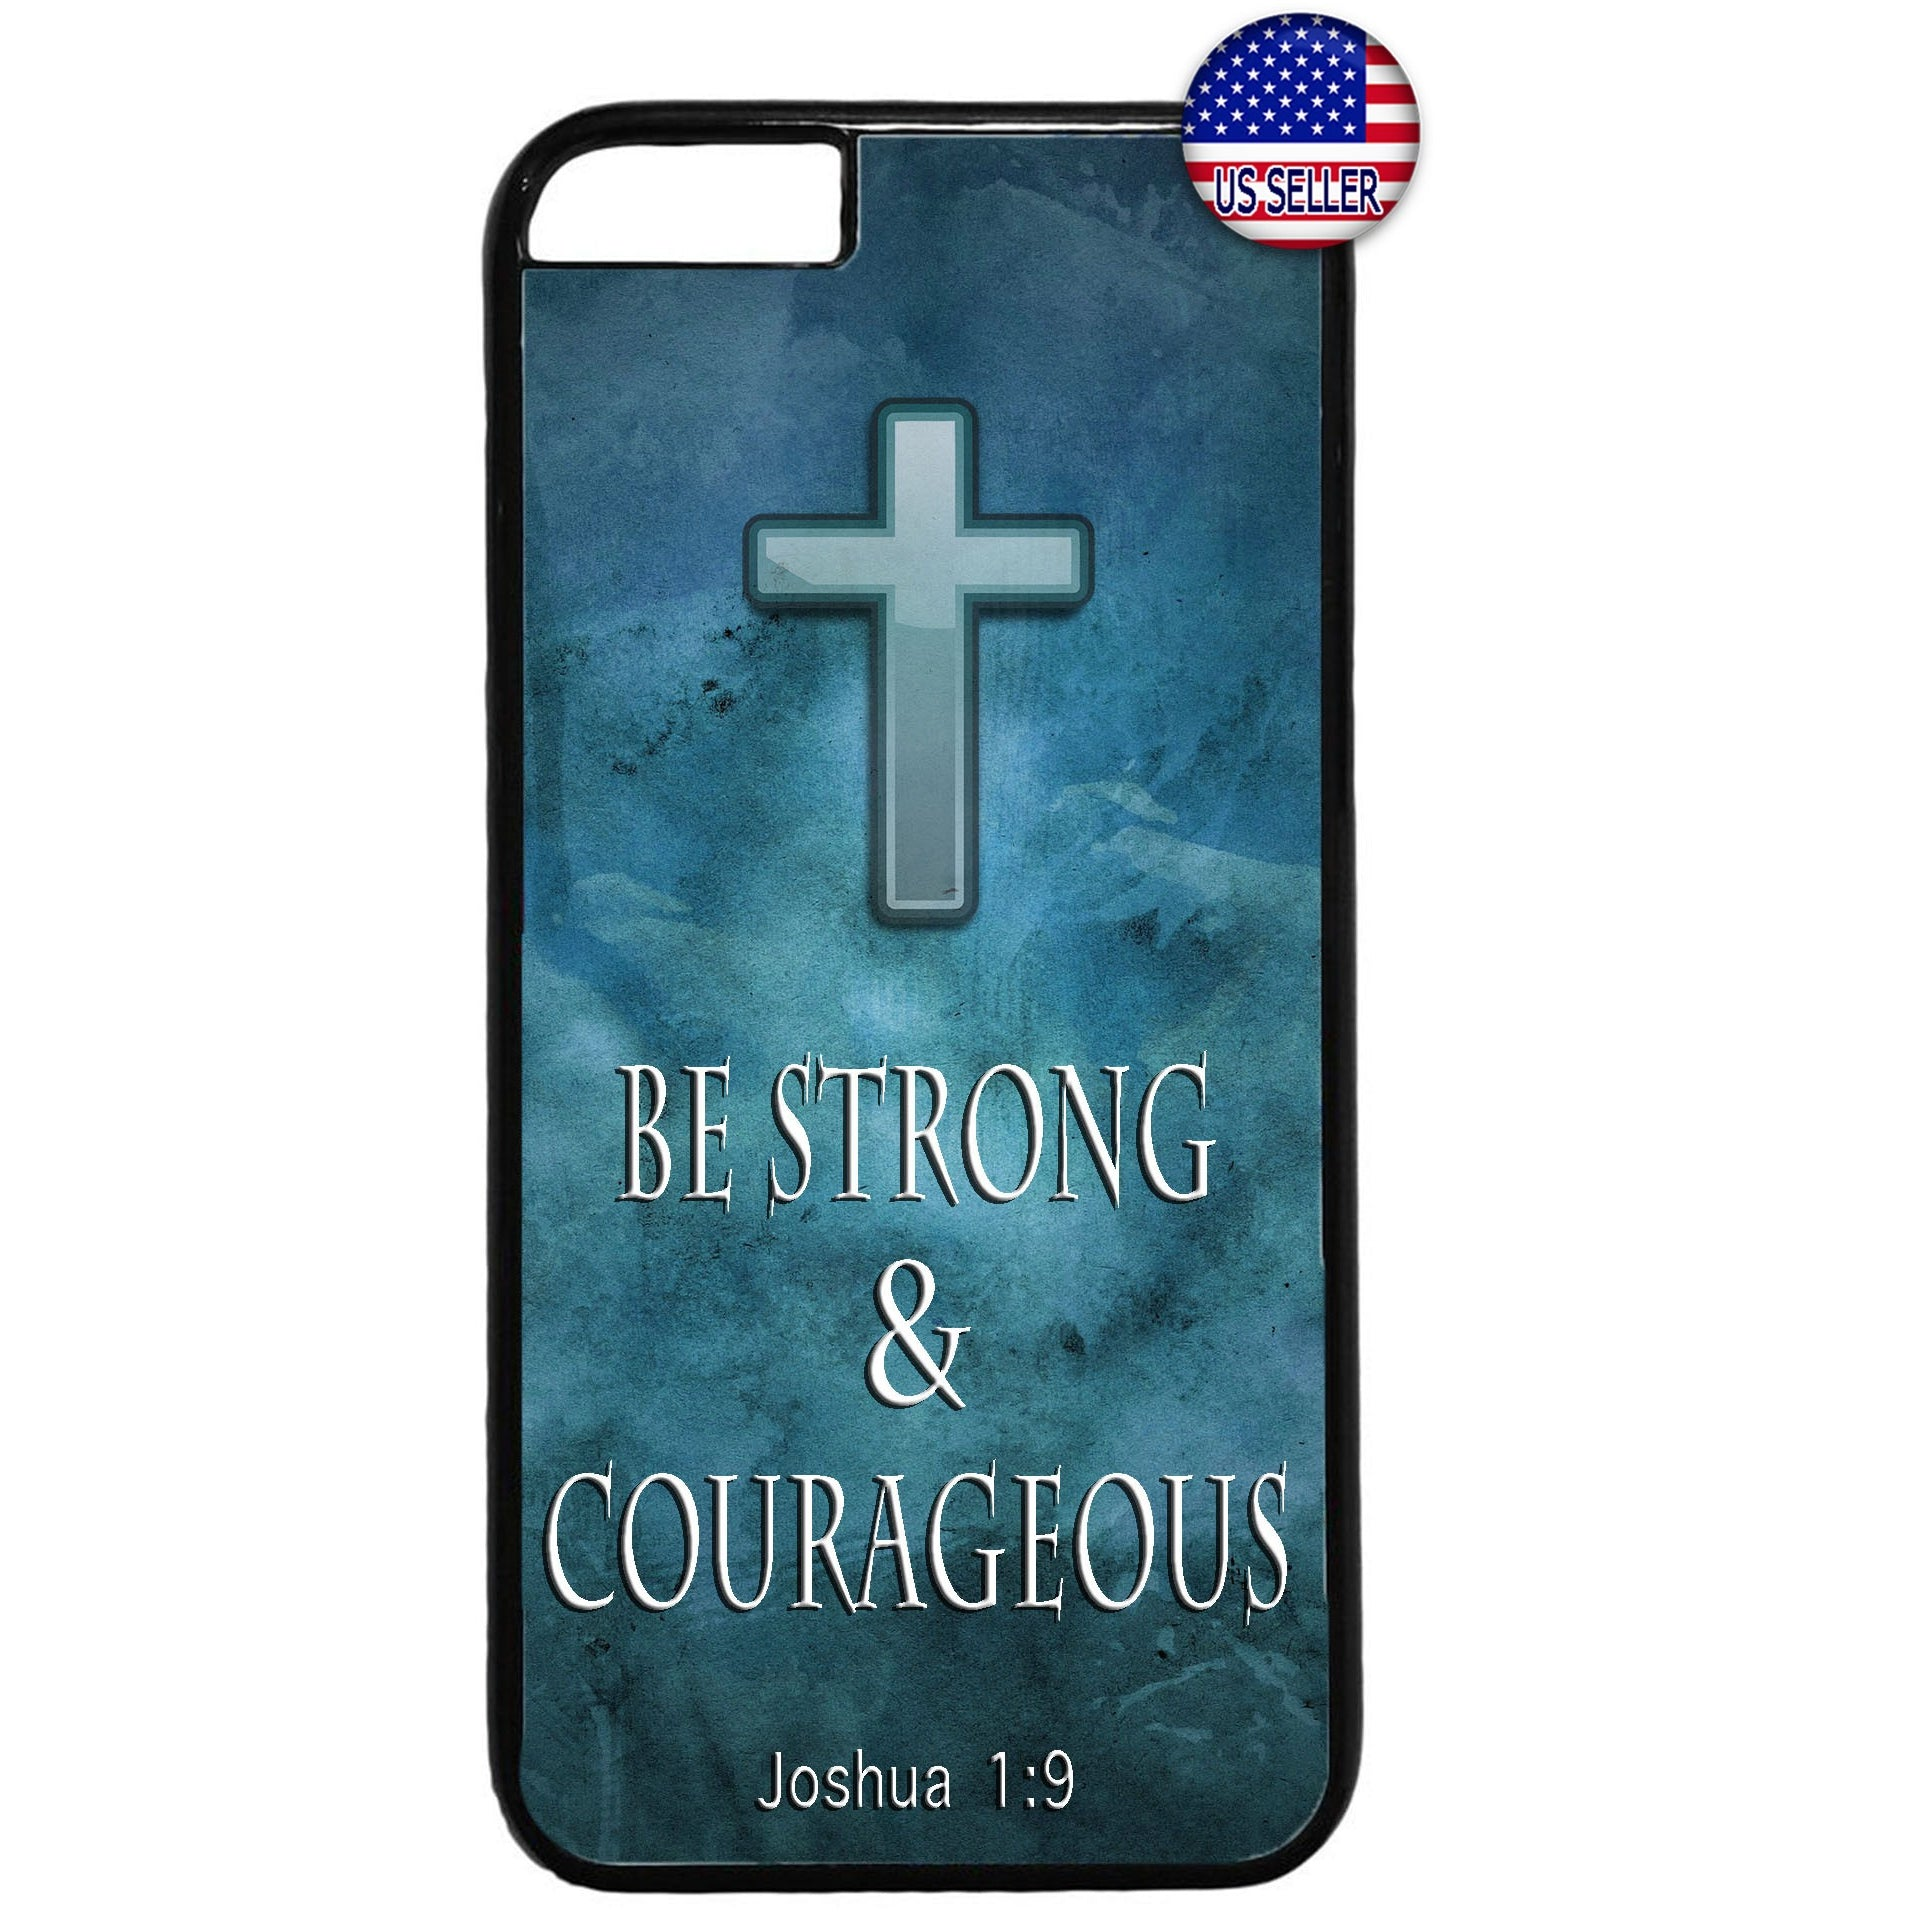 Jesus Christ Cross Courageous Christian Rubber Case Cover For Iphone